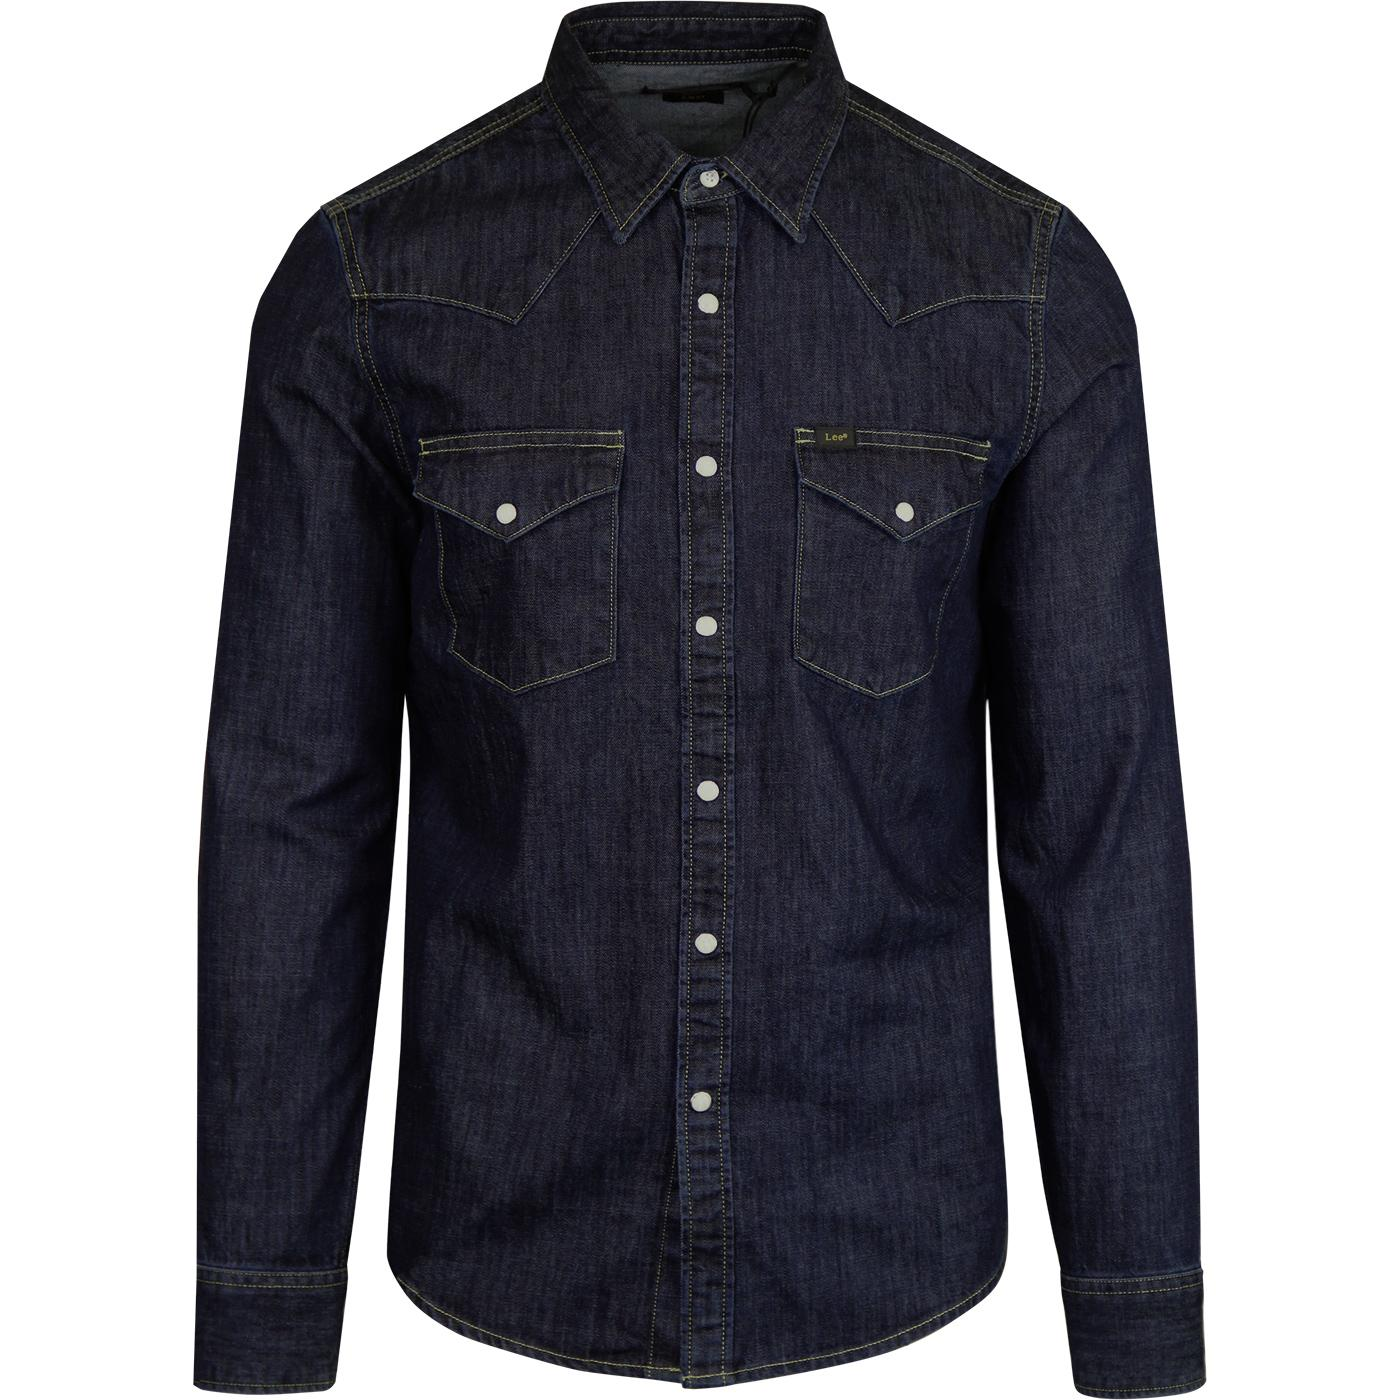 LEE Retro 70s Slim Denim Western Shirt (Blueprint)